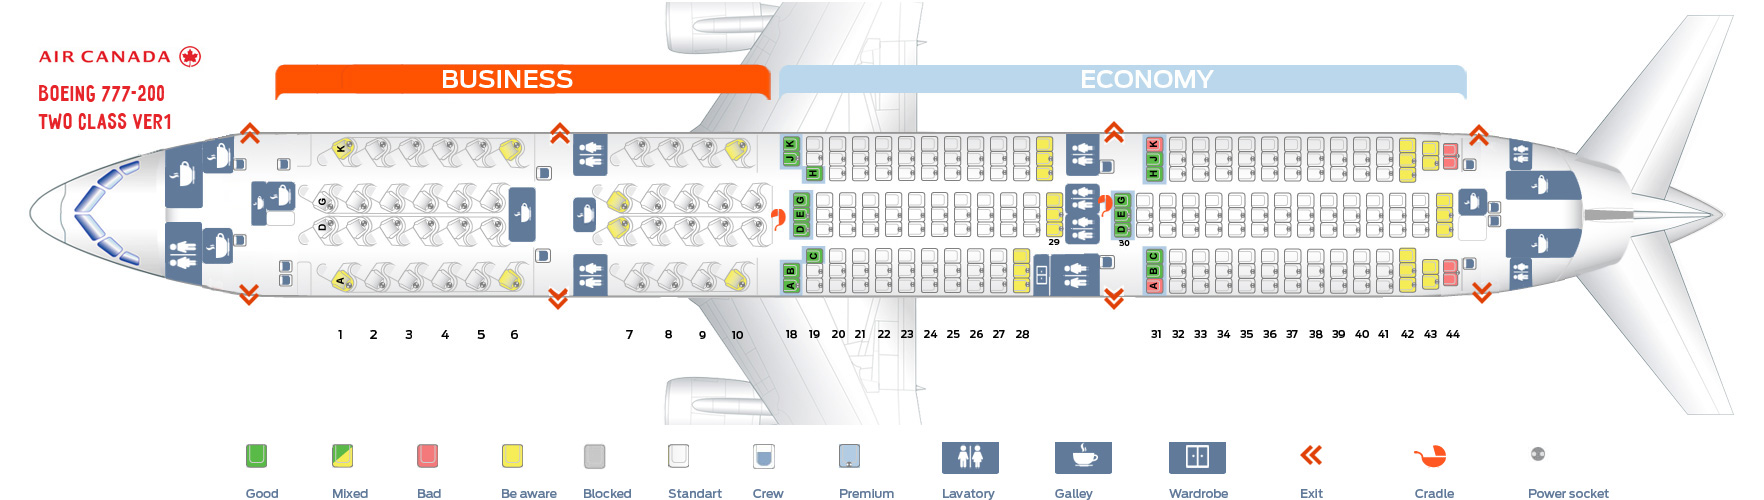 Seat map Air Canada Boeing-777-200 Two Class version 1